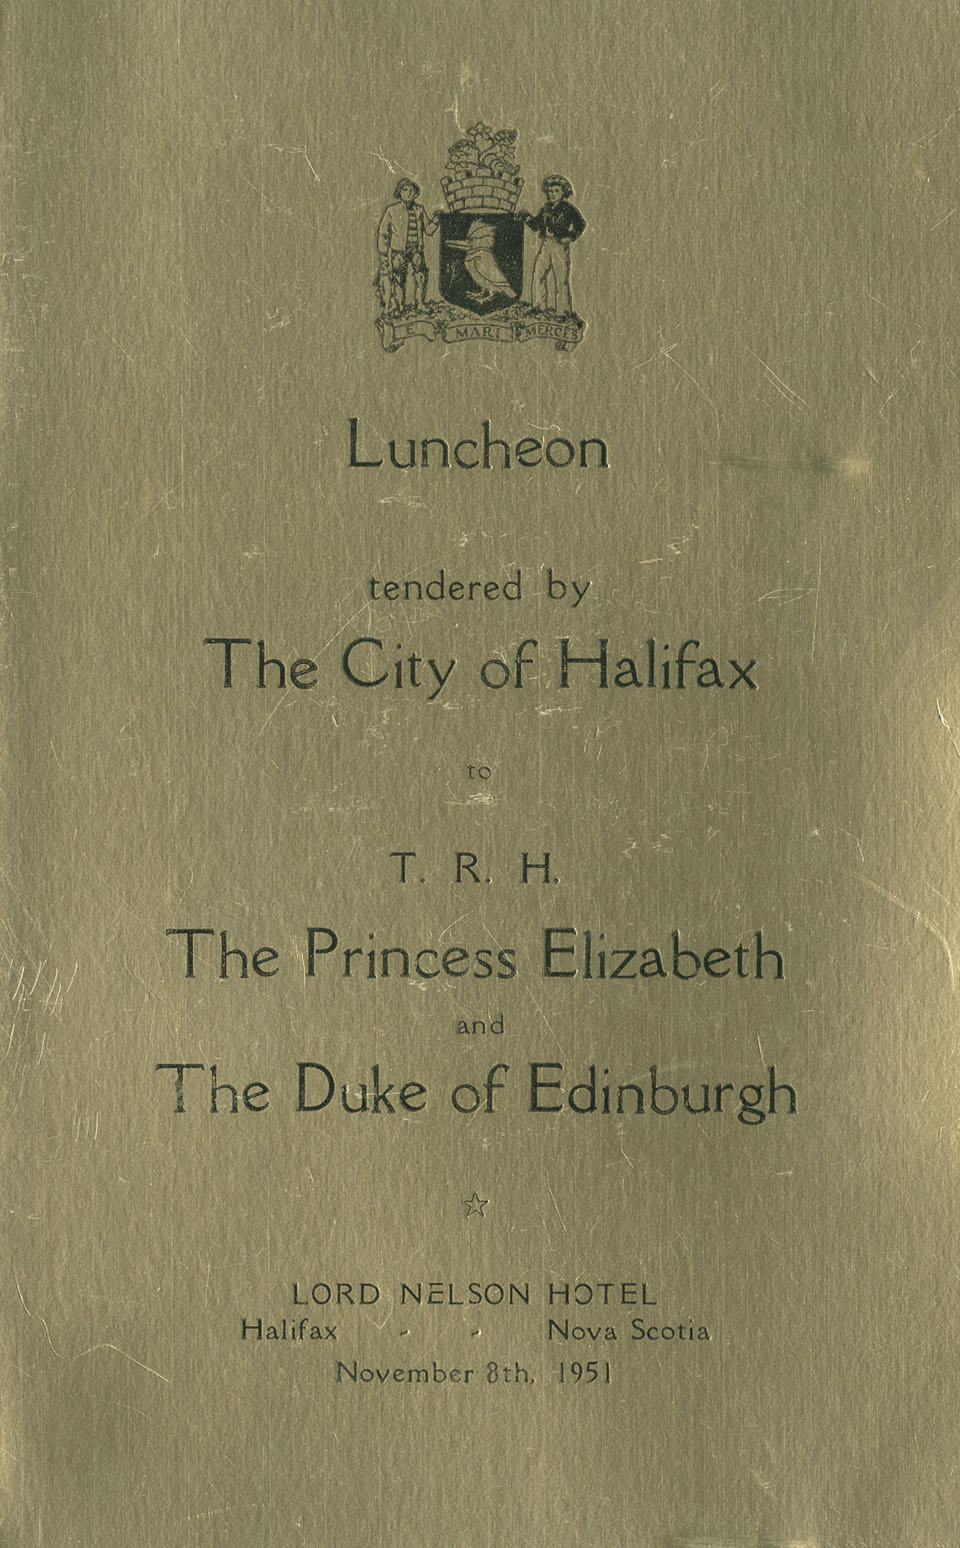 Programme for luncheon held at Lord Nelson Hotel